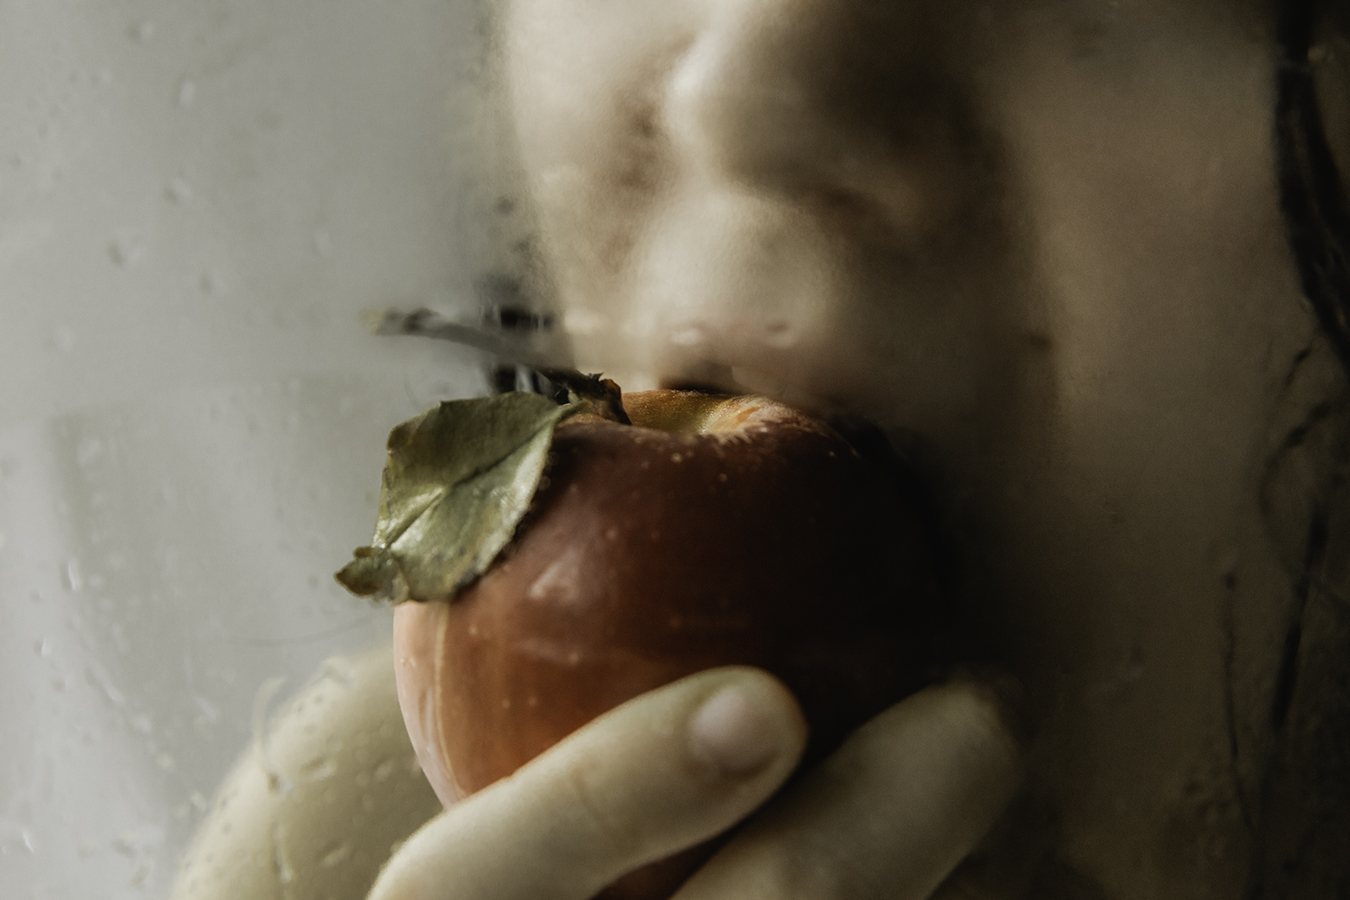 ALEXIS_MASINO_UPENN_TONY_WARD_STUDIO_FASHION_PHOTOGRAPHY_EROTIC_EROTICA_HESPERIDES_DYPTIQUE_GARDEN_APHRODITE_NYMPH_GIRL_WET_WATER_GLASS_NUDE_SKIN_APPLE_GOLDEN_BITE_MOUTH_HAND_TOUCH